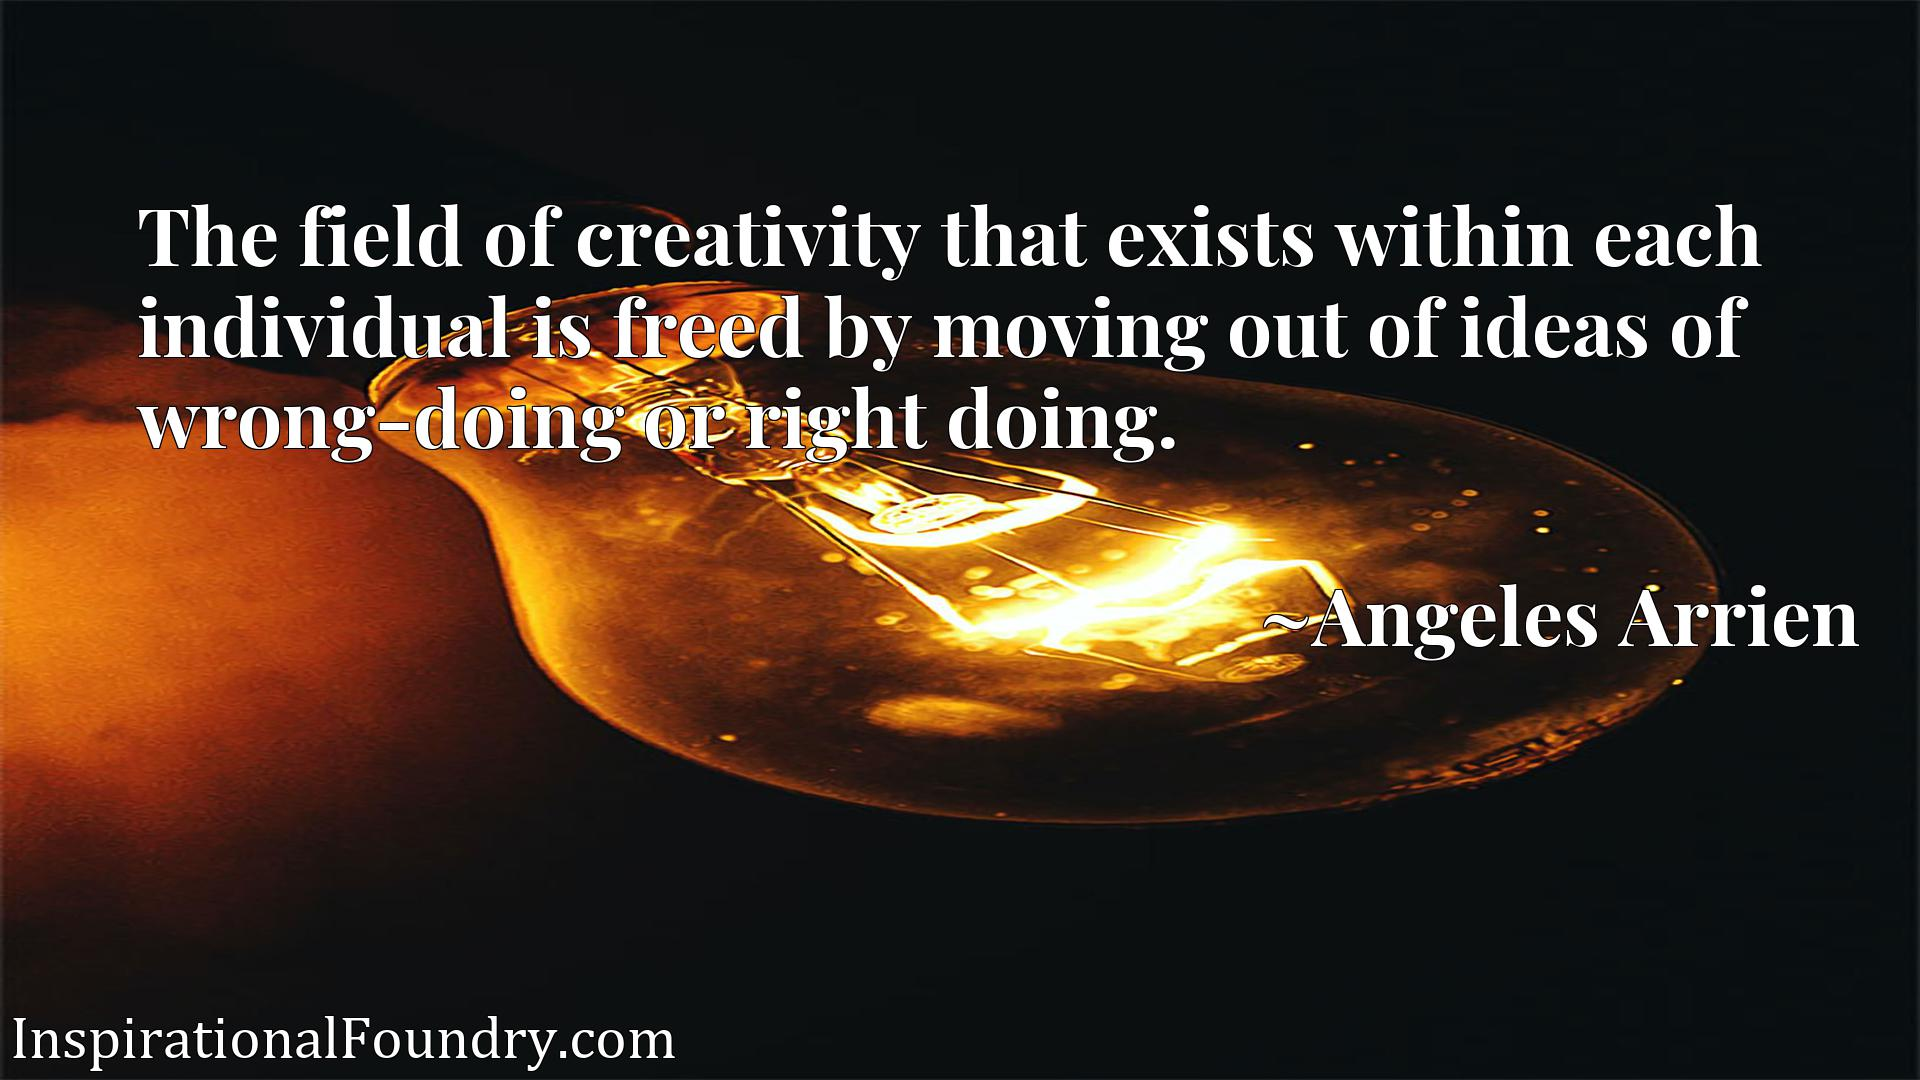 The field of creativity that exists within each individual is freed by moving out of ideas of wrong-doing or right doing.